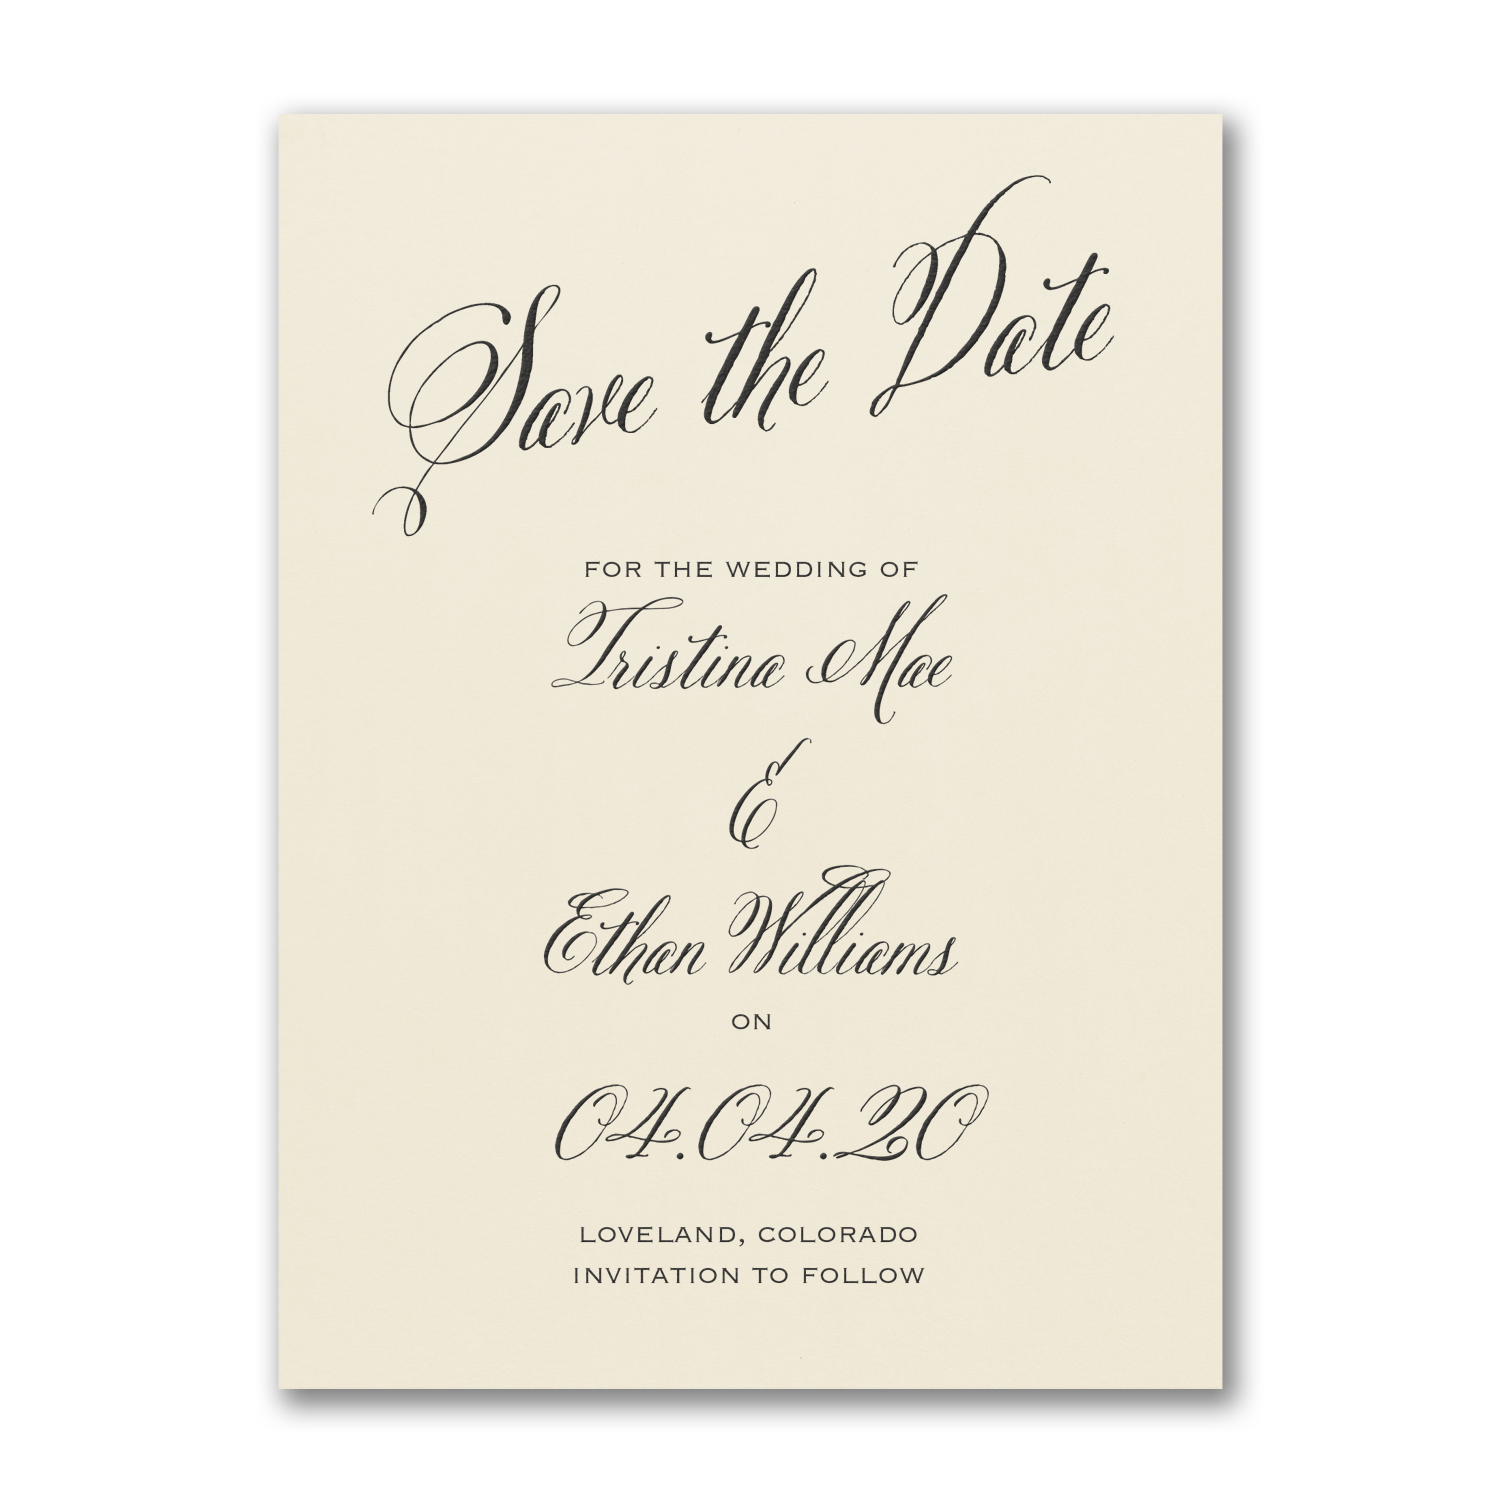 delightful date save the date card carlson craft